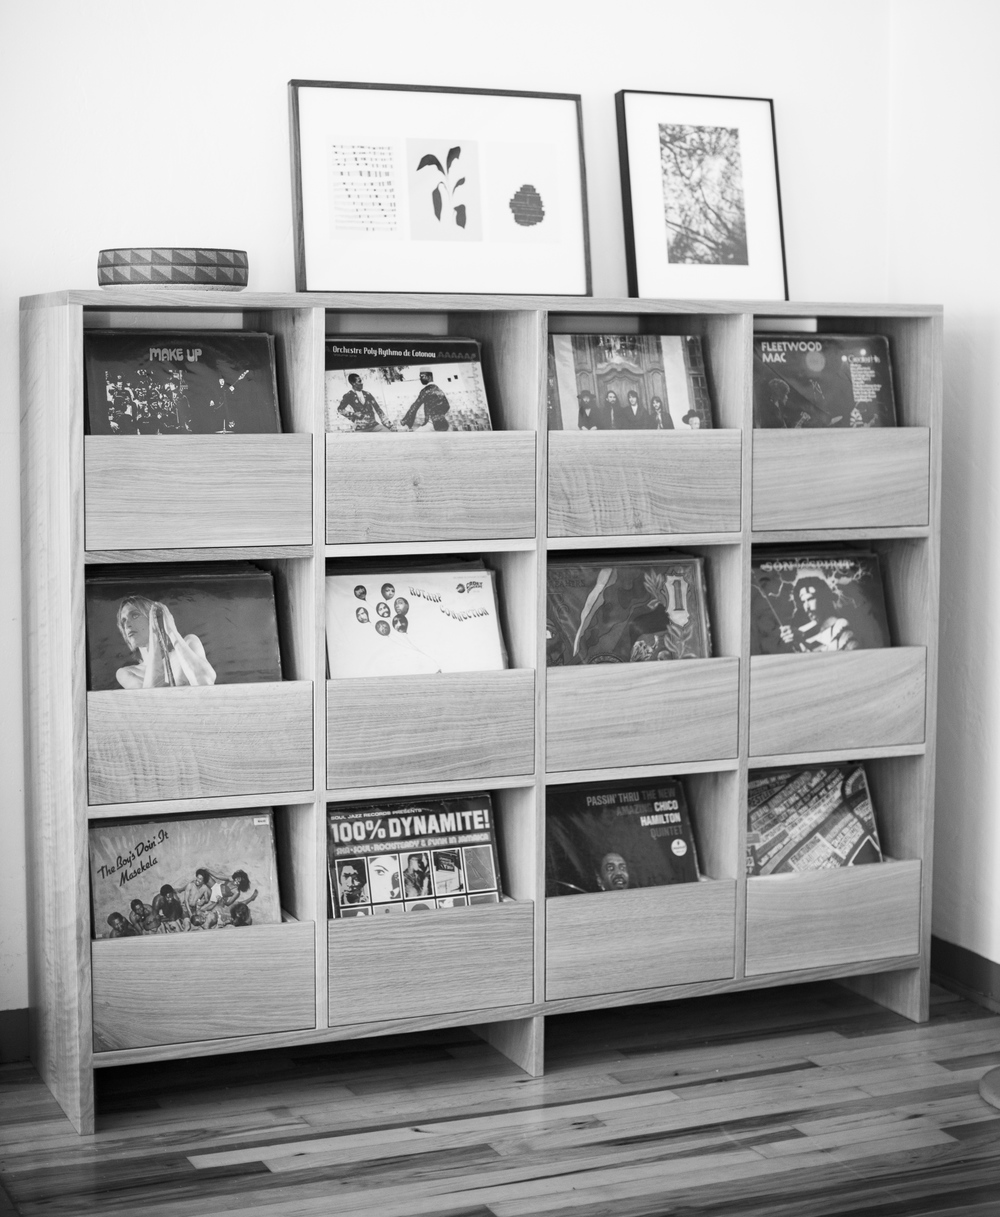 Killscrow Vinyl Cabinet B&W